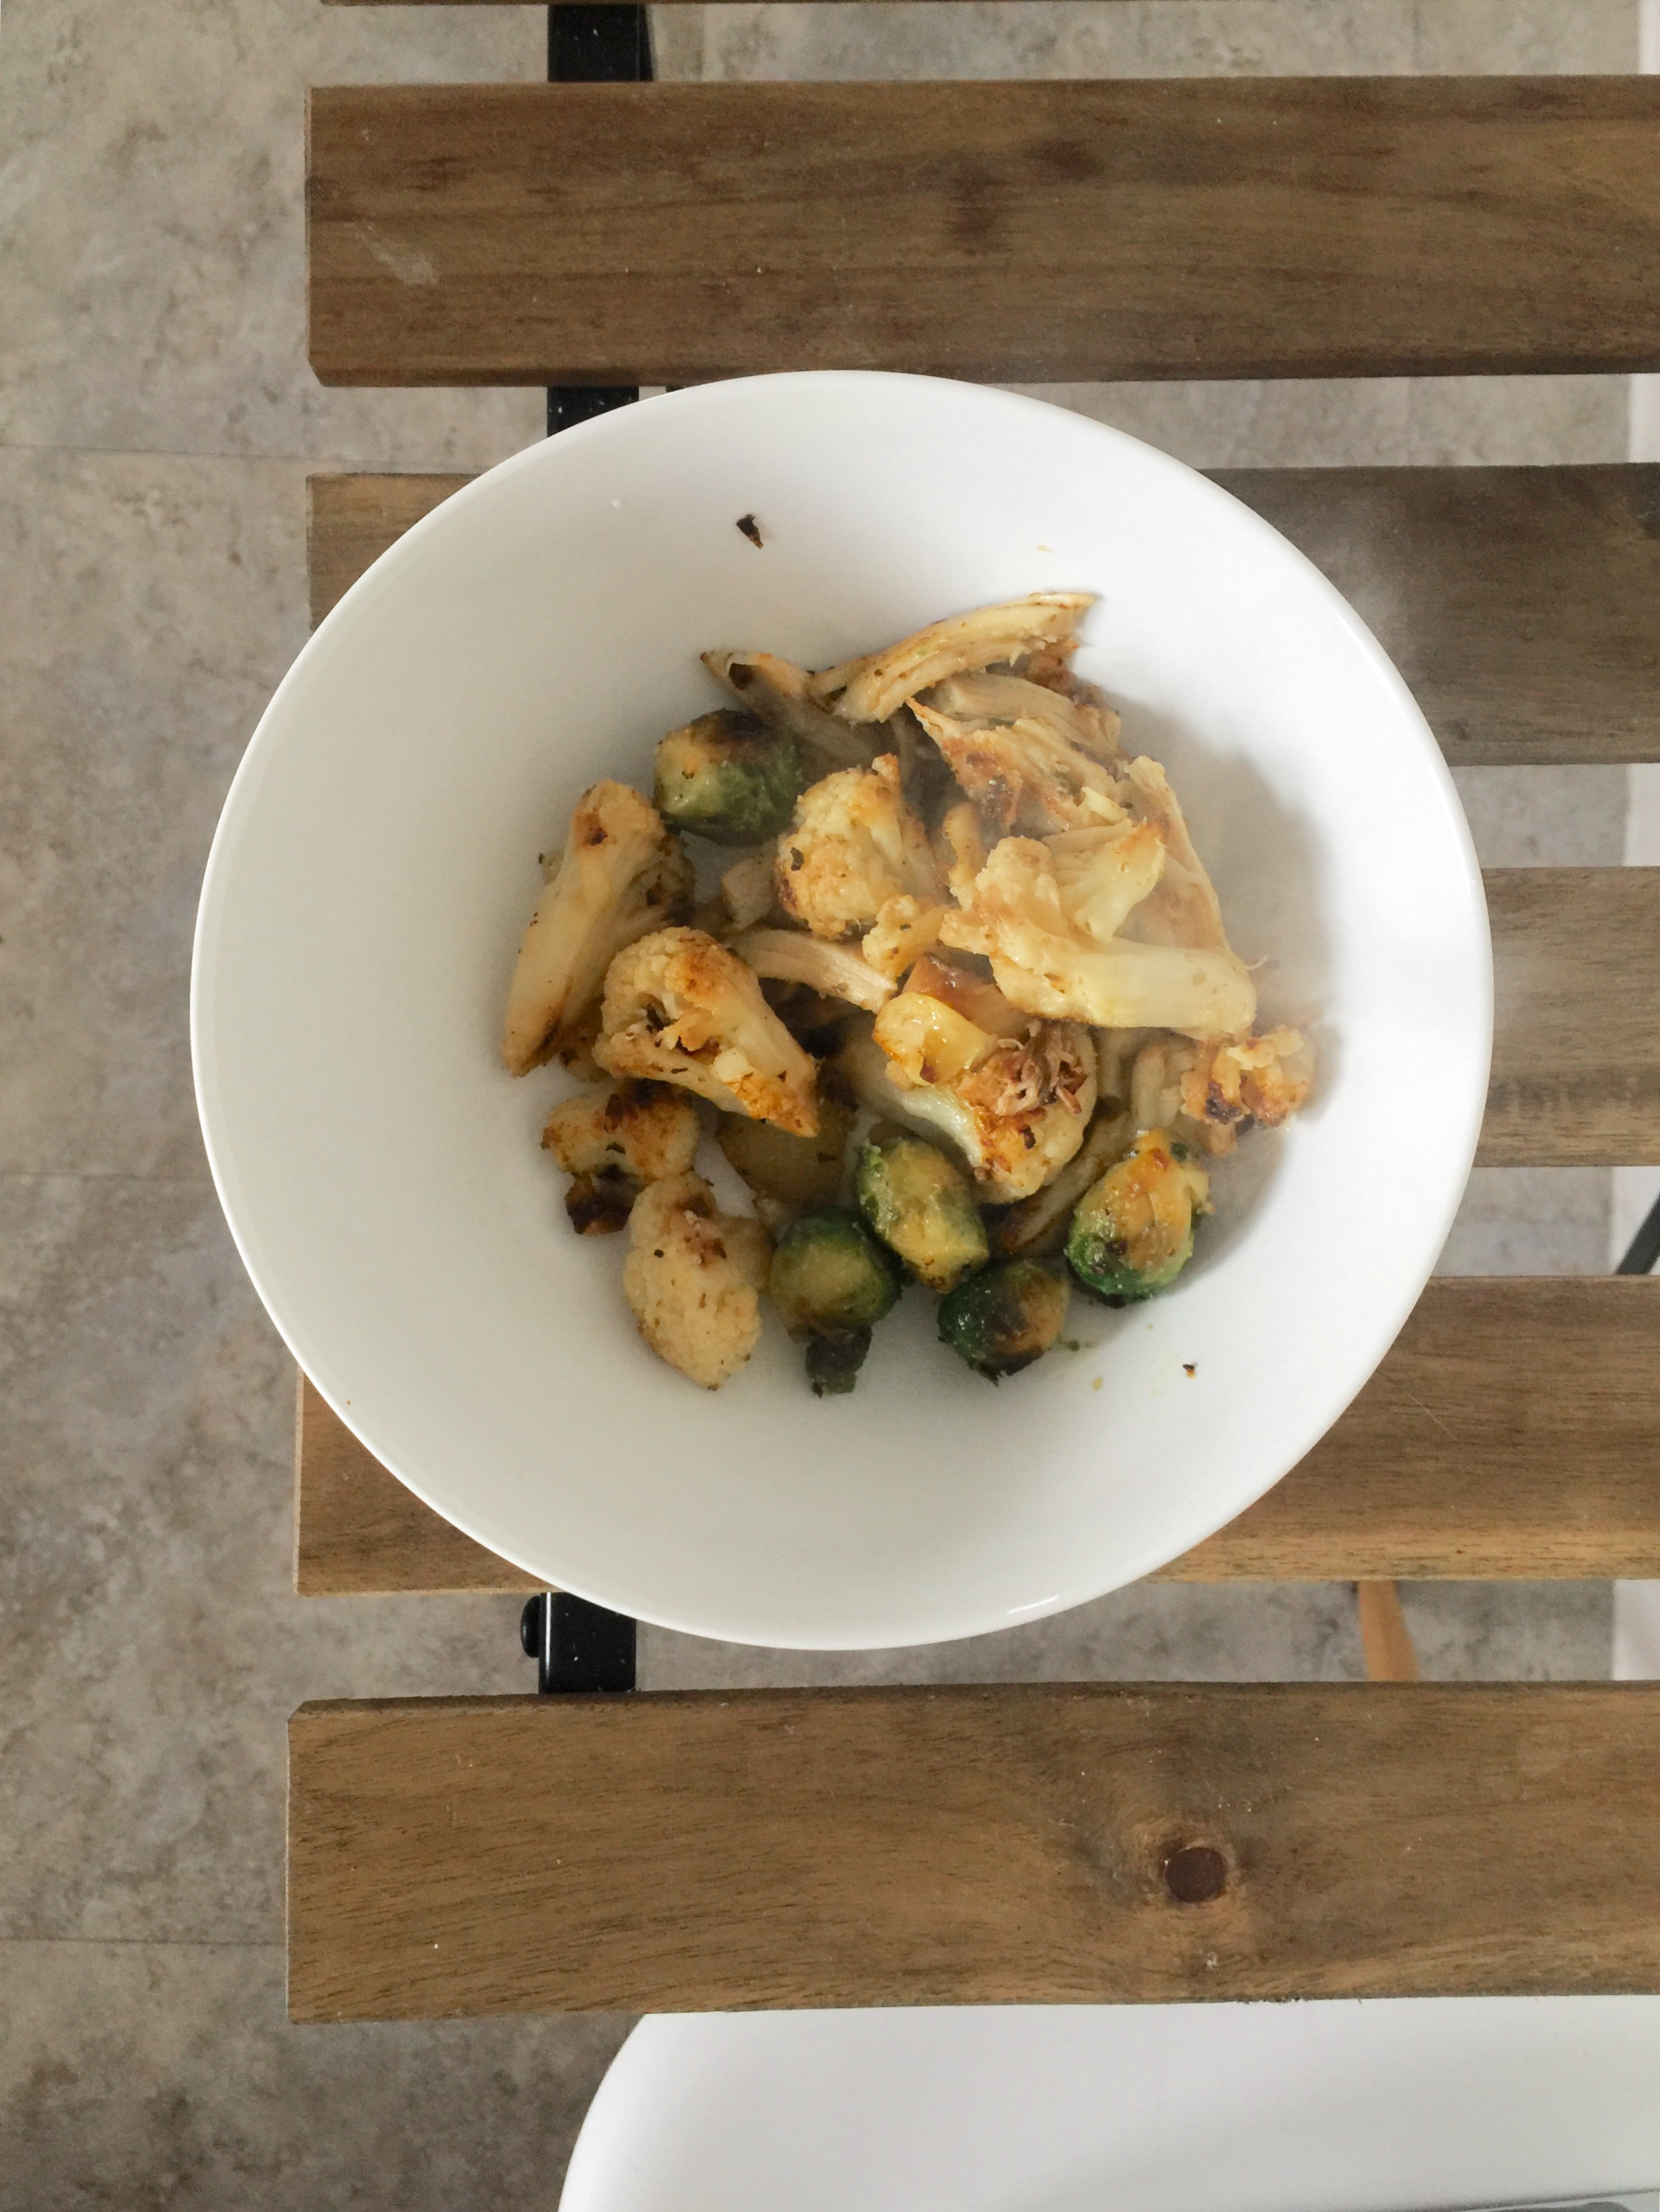 Chicken, Roasted Brussels sprout, and Roasted Cauliflower